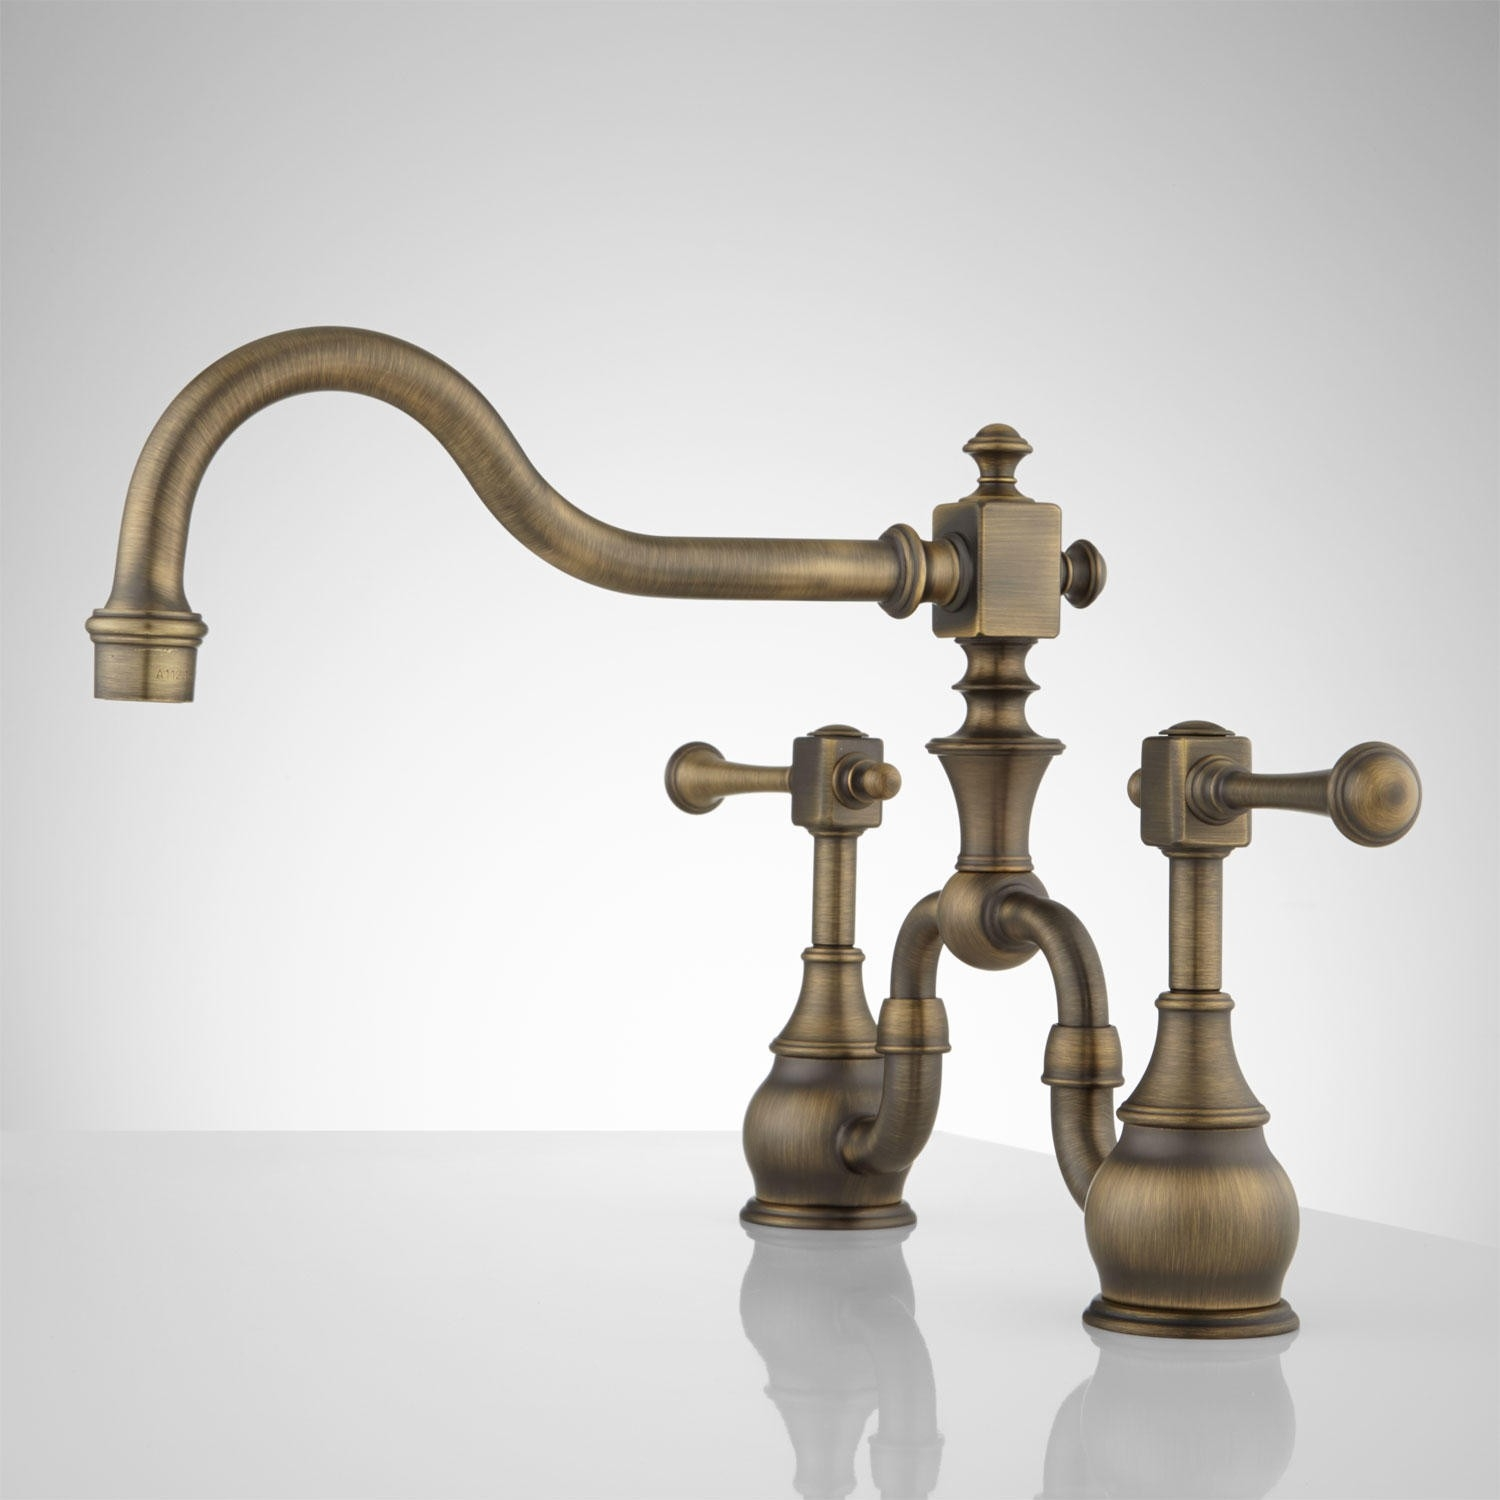 Ideas, kitchen wall mount kitchen faucets bridge faucet country with regard to proportions 1500 x 1500  .